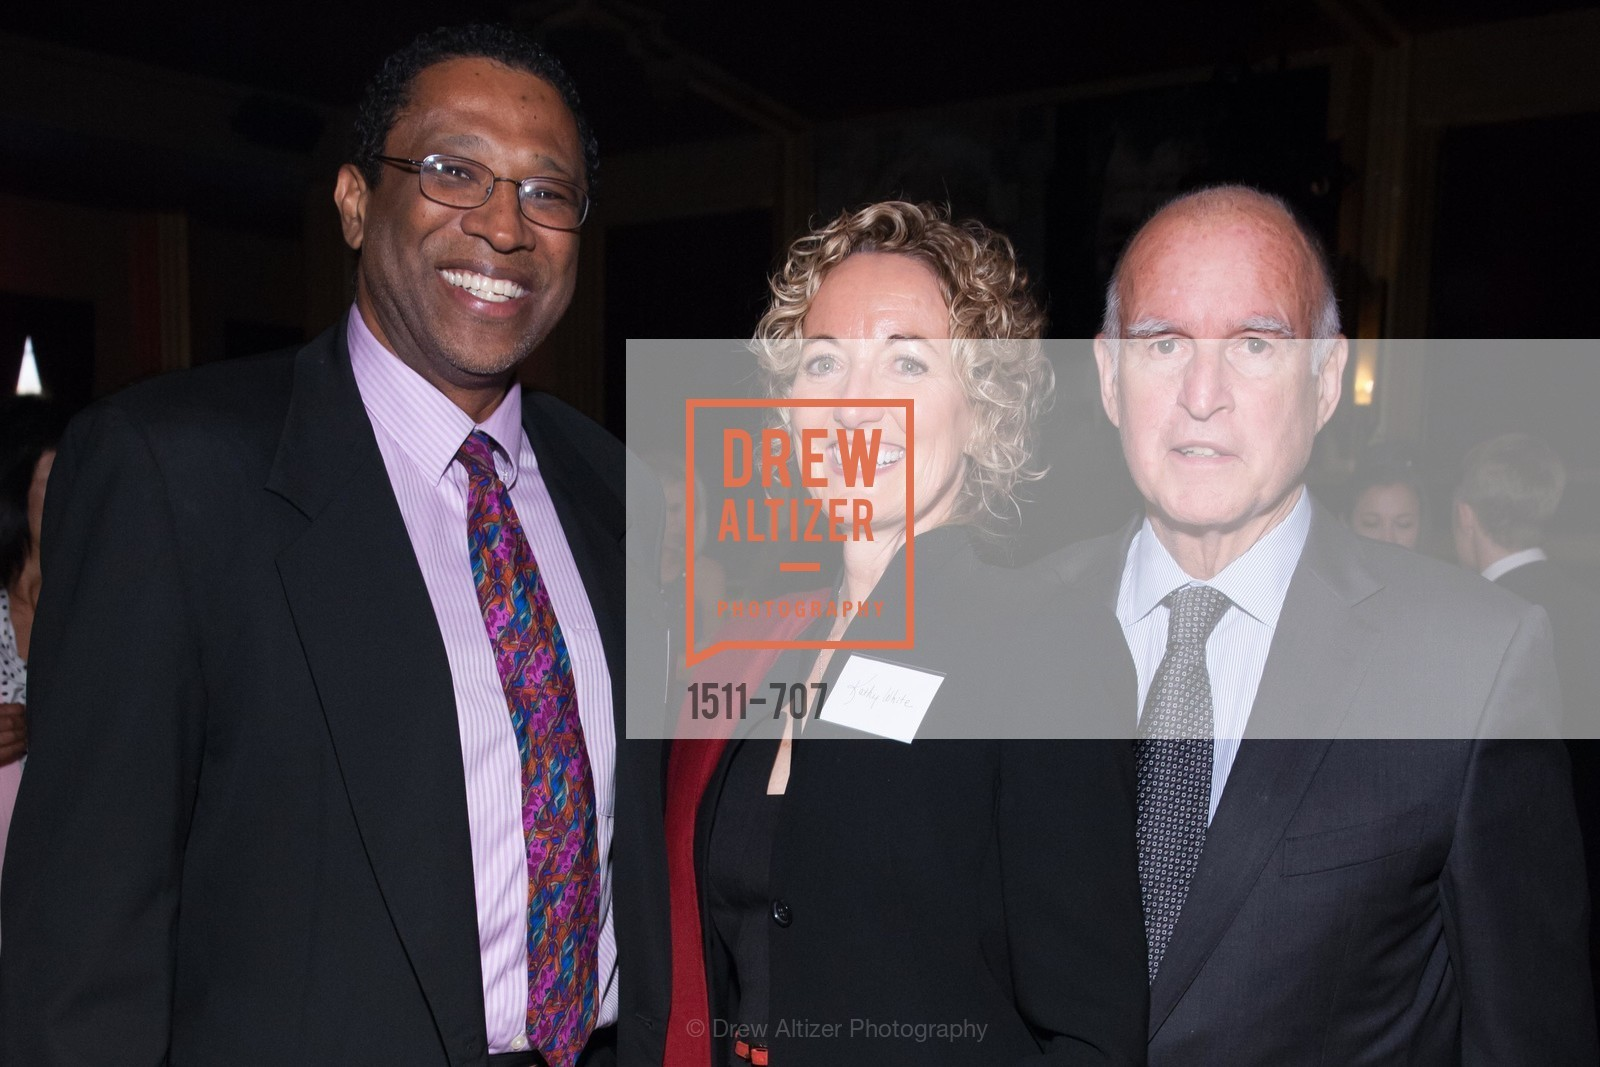 Ian Ahwal, Kathy White, Gov. Jerry Brown, OAKLAND SCHOOL FOR THE ARTS Gala 2015 with Governor Jerry Brown, US, May 7th, 2015,Drew Altizer, Drew Altizer Photography, full-service agency, private events, San Francisco photographer, photographer california